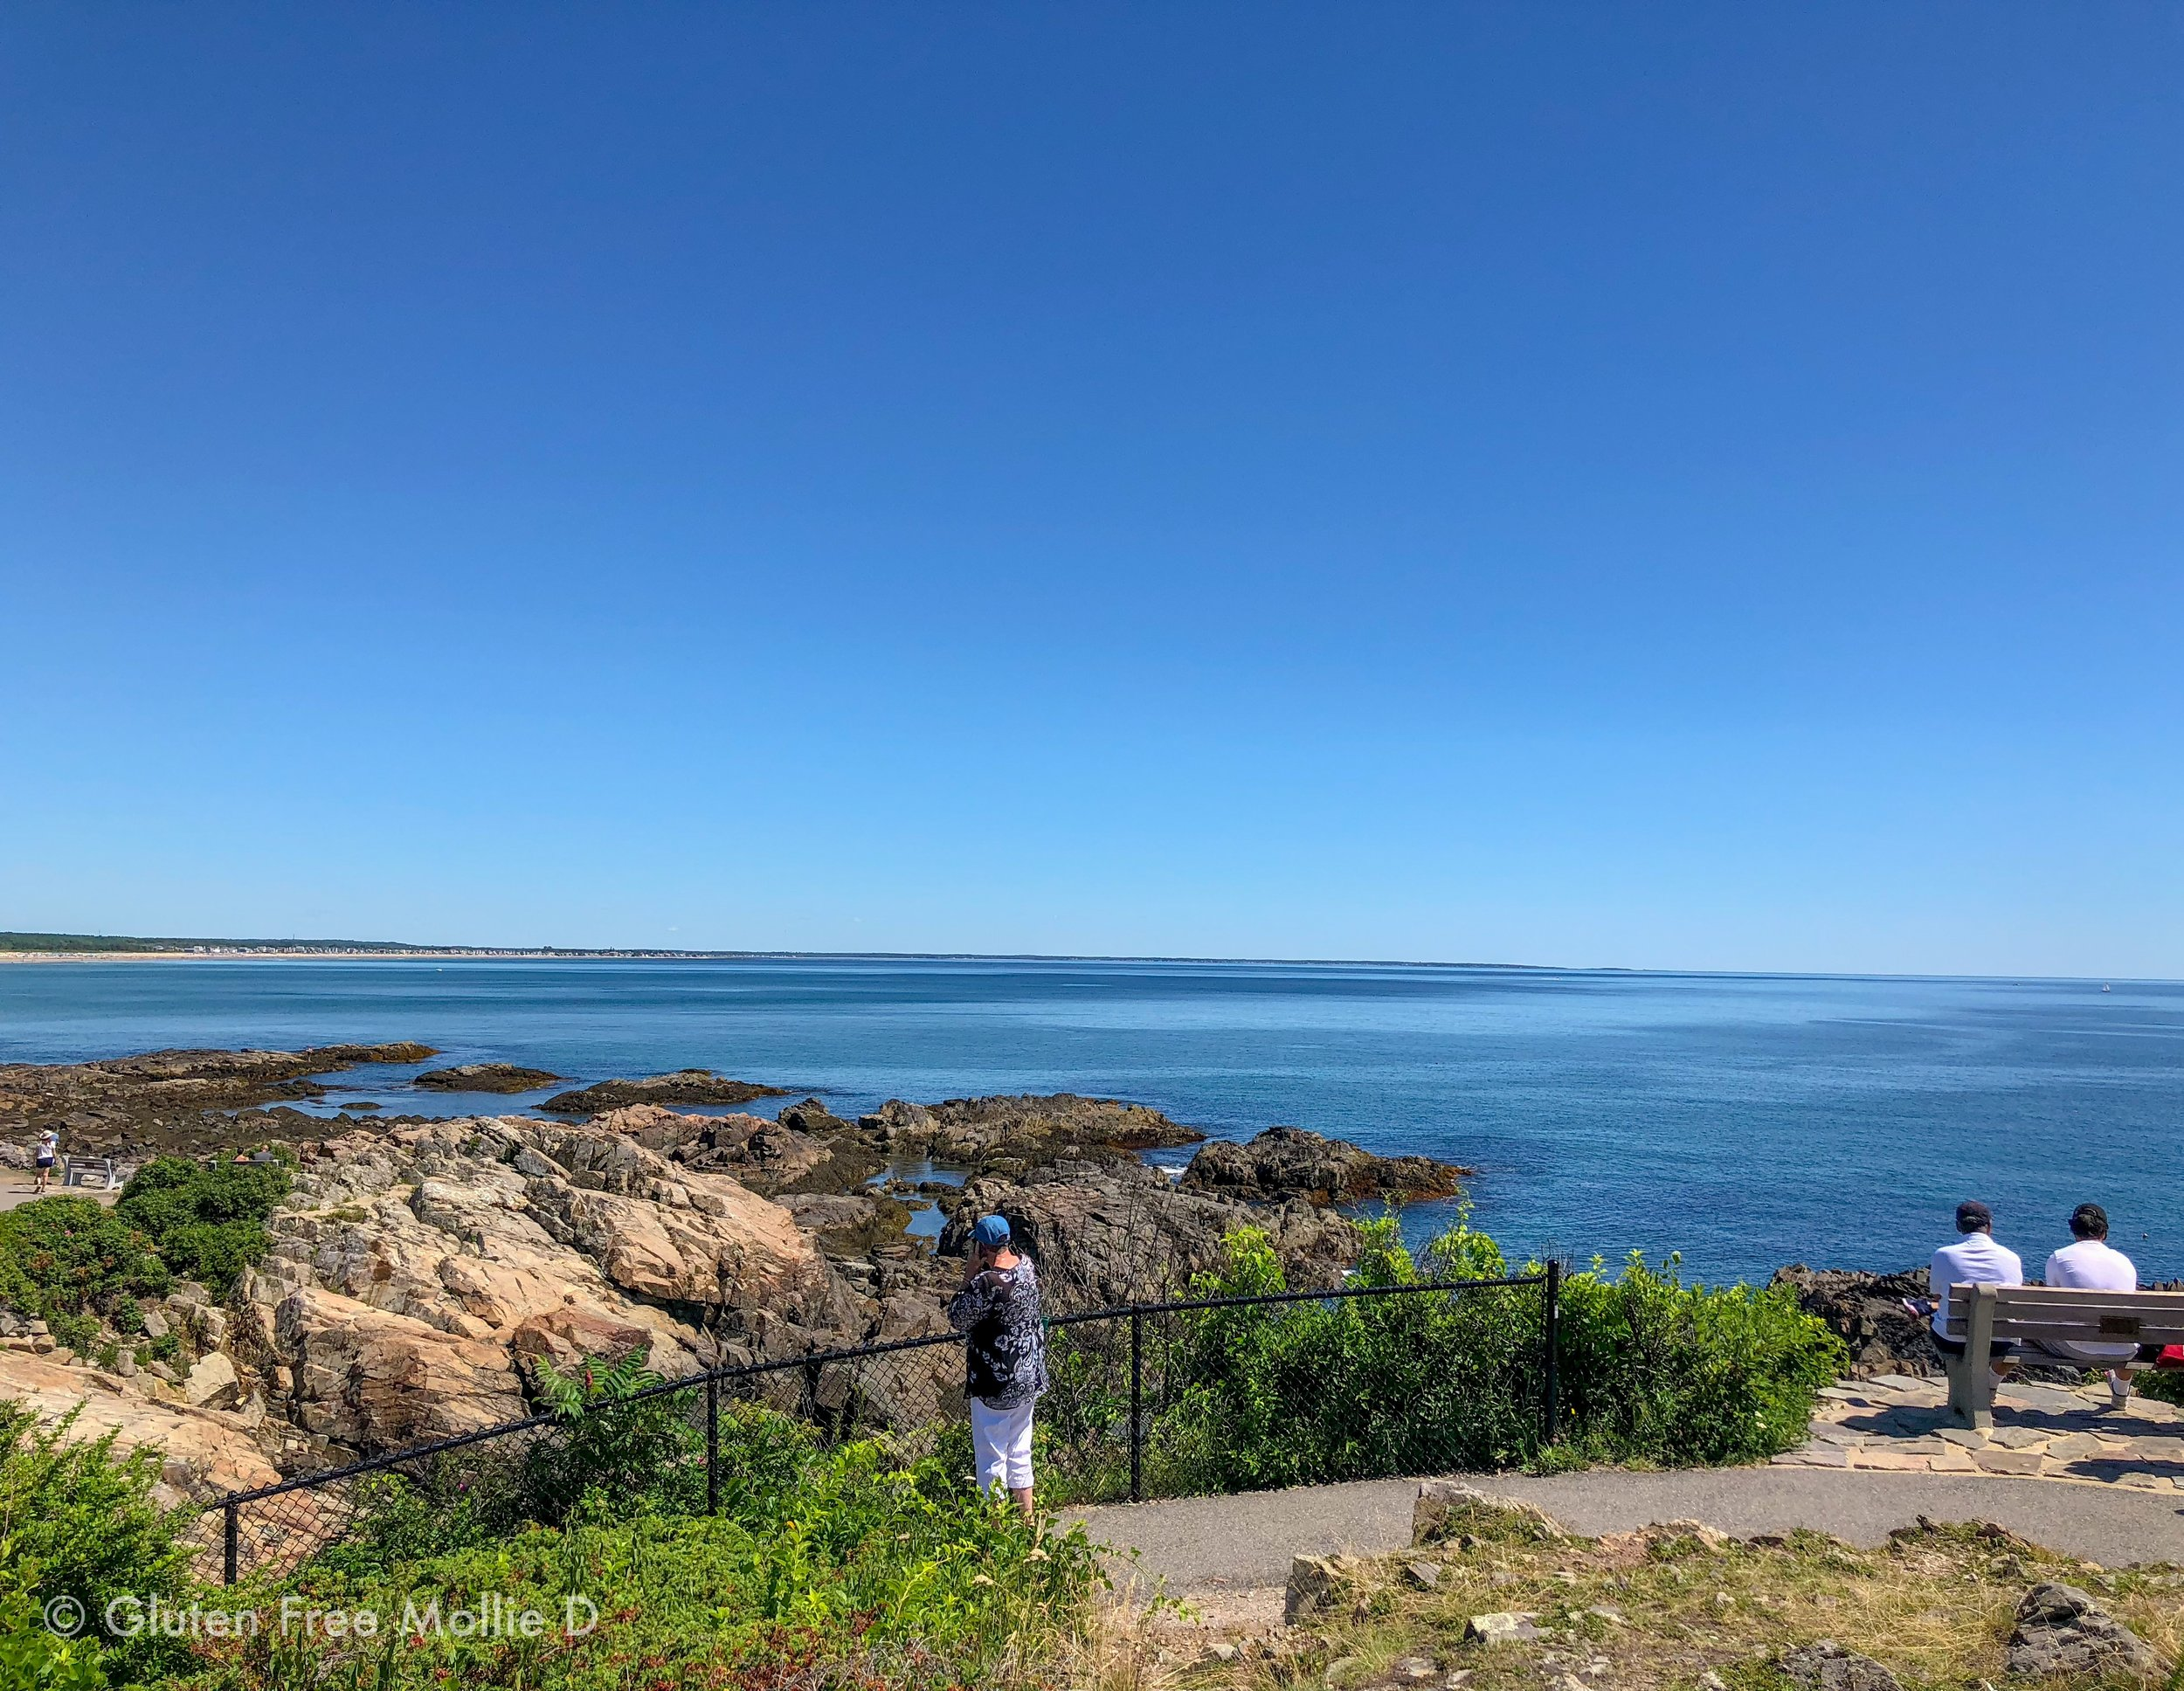 View along the Marginal Way which will bring you to Perkins Cove in Ogunquit.